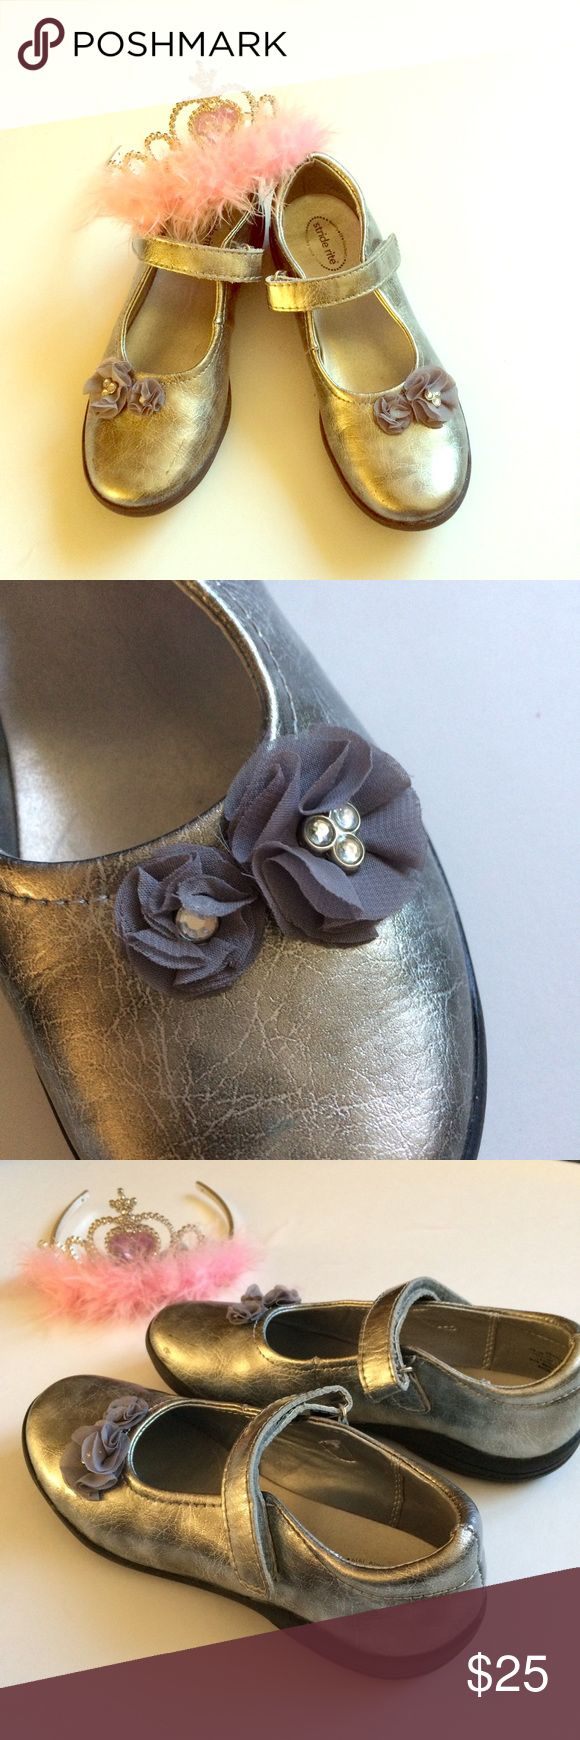 Stride Rite MaryJane Antique like silver leather upper w flower accent. Velcro fastener. Non marking sole. Gently worn a few times. Pairs with everything. Very good condition. Stride Rite Shoes Dress Shoes